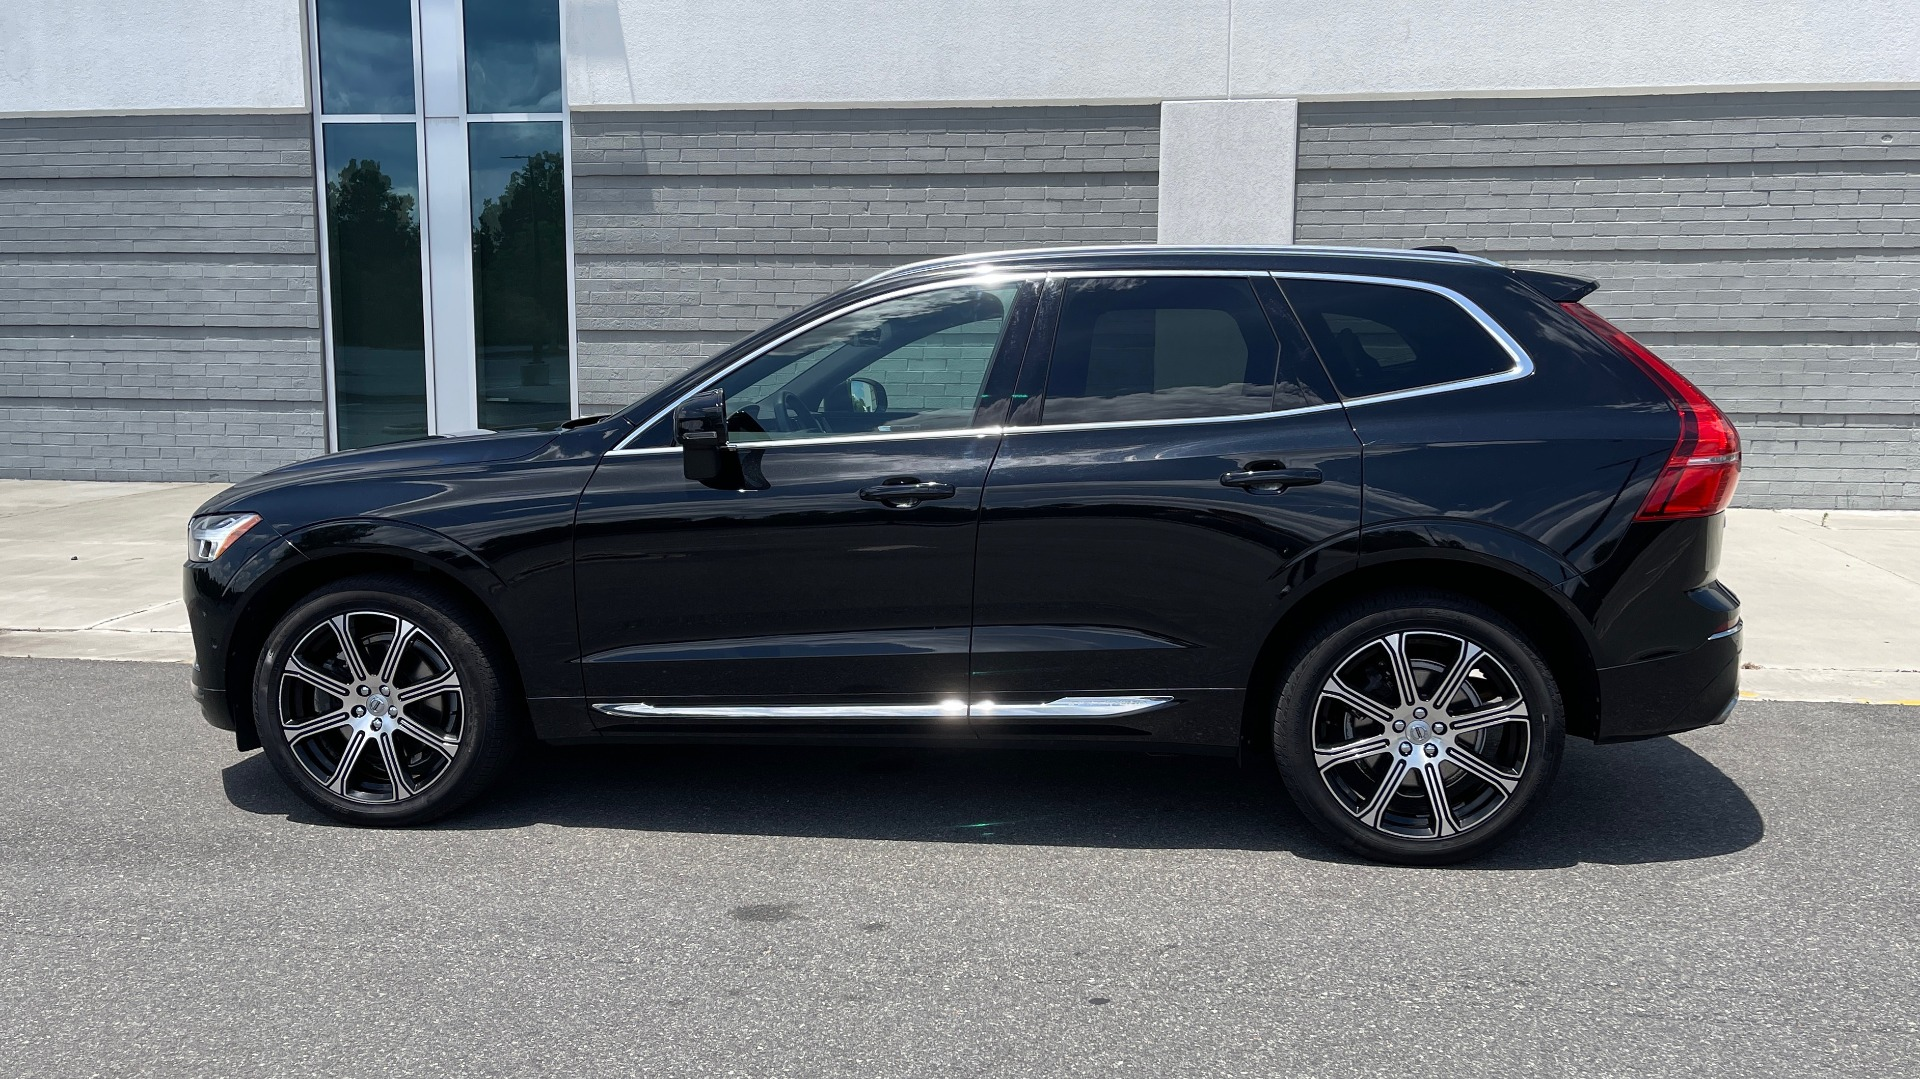 Used 2018 Volvo XC60 INSCRIPTION 2.0L TURBO SUV / AWD / NAV / SUNROOF / REARVIEW for sale $38,795 at Formula Imports in Charlotte NC 28227 4